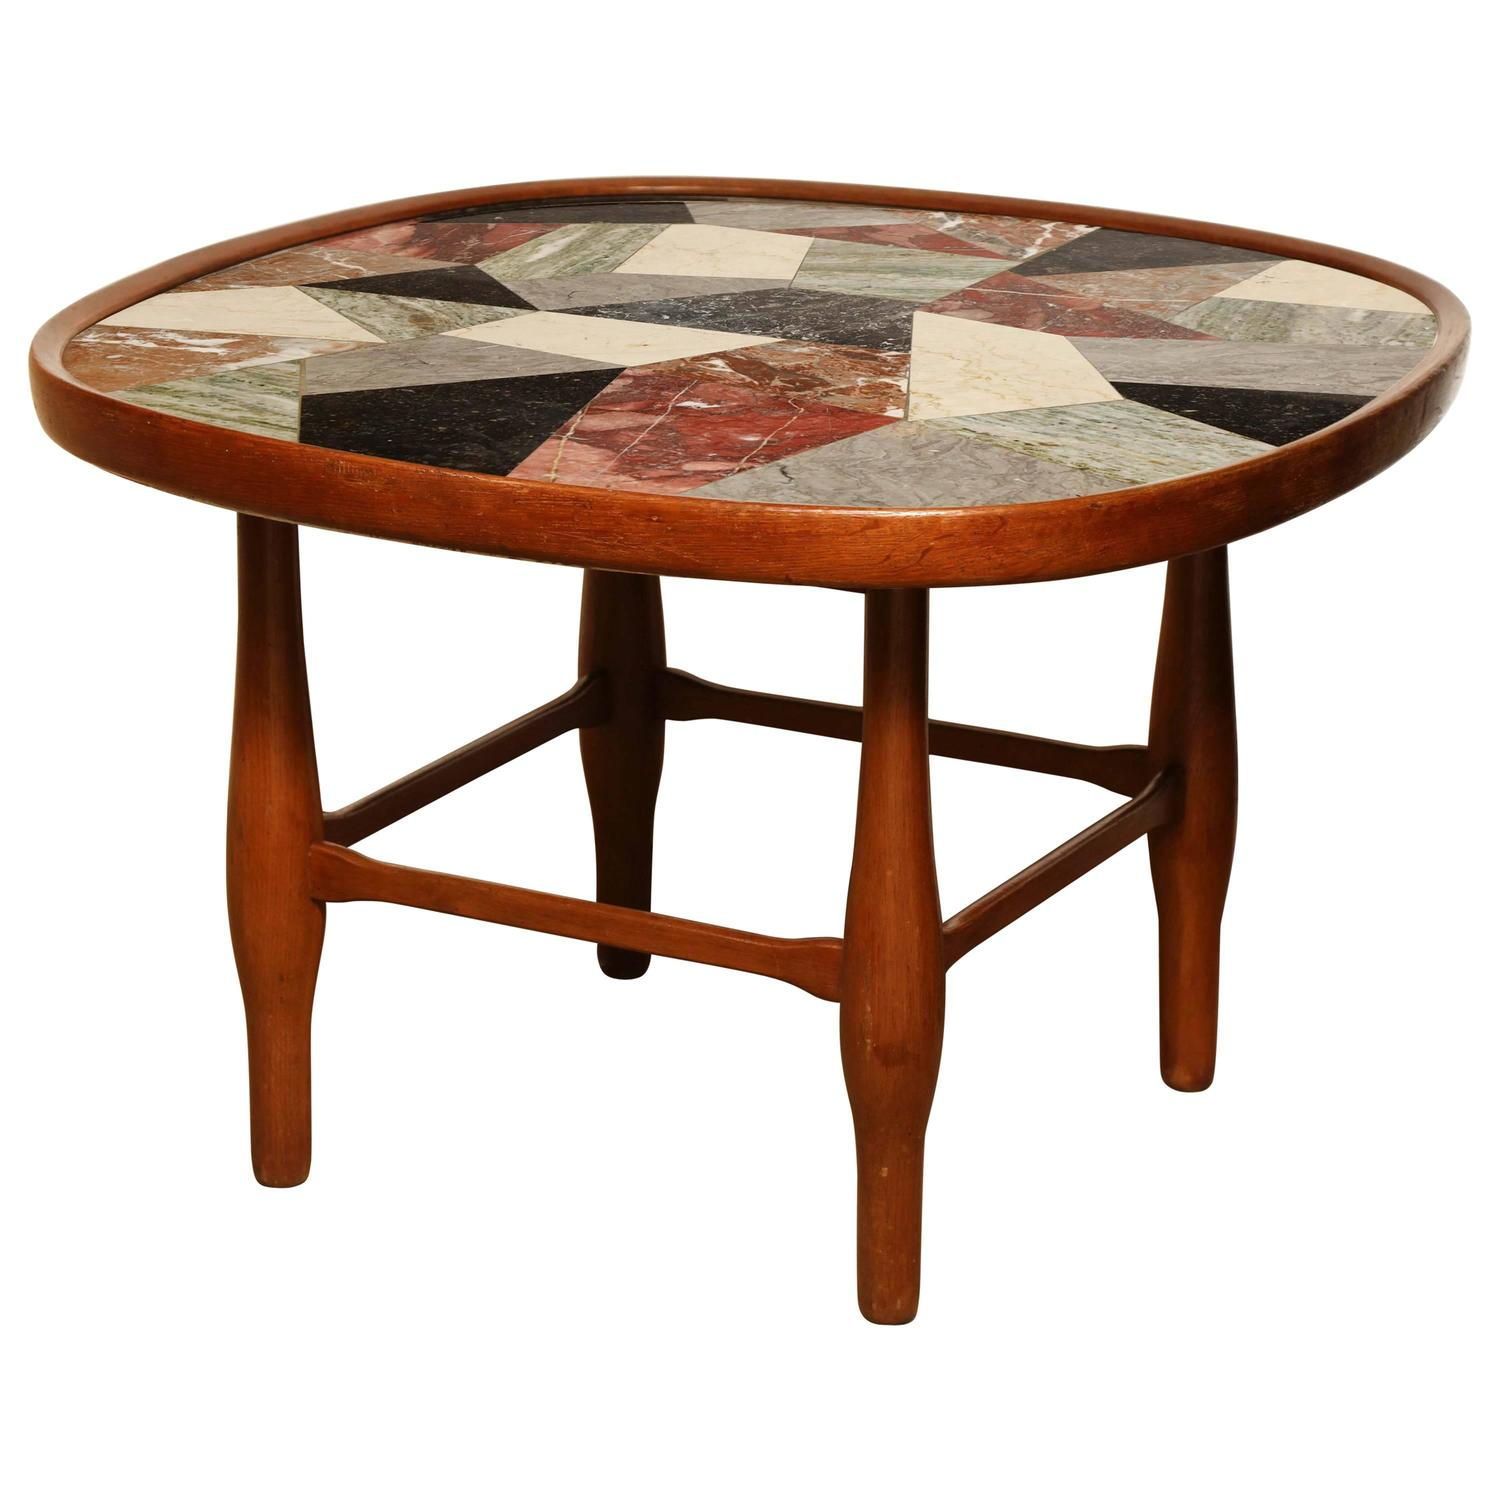 New York Marble Coffee Table: Specimen Marble And Fruitwood, 1950s Coffee Table For Sale